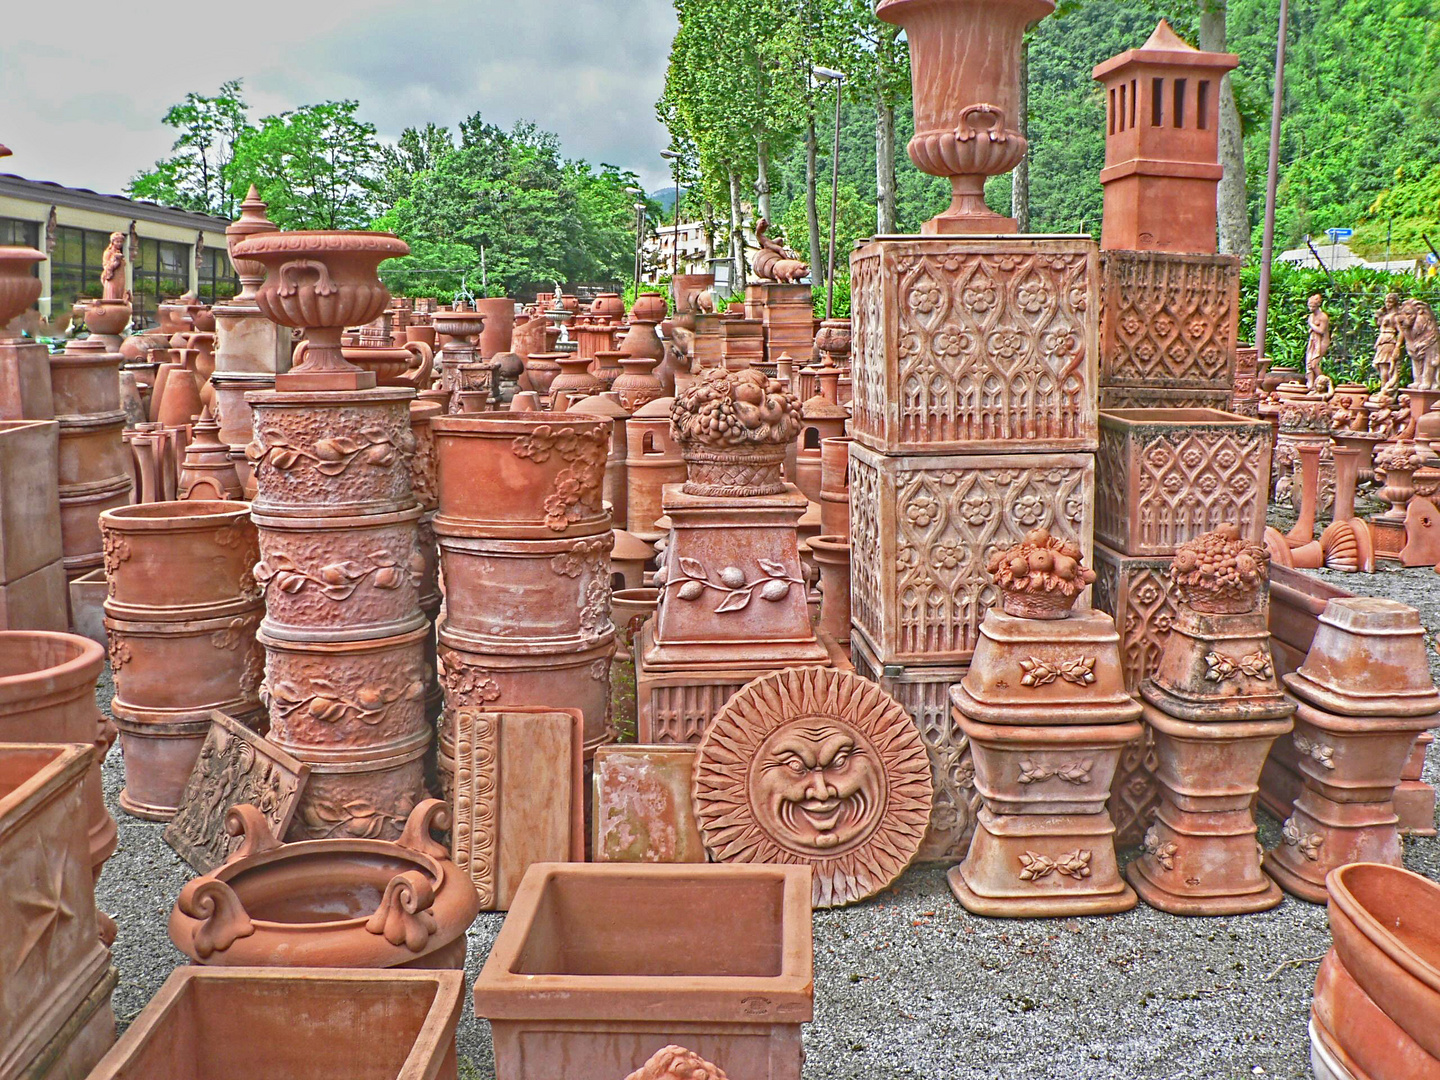 Terracotta in Impruneta